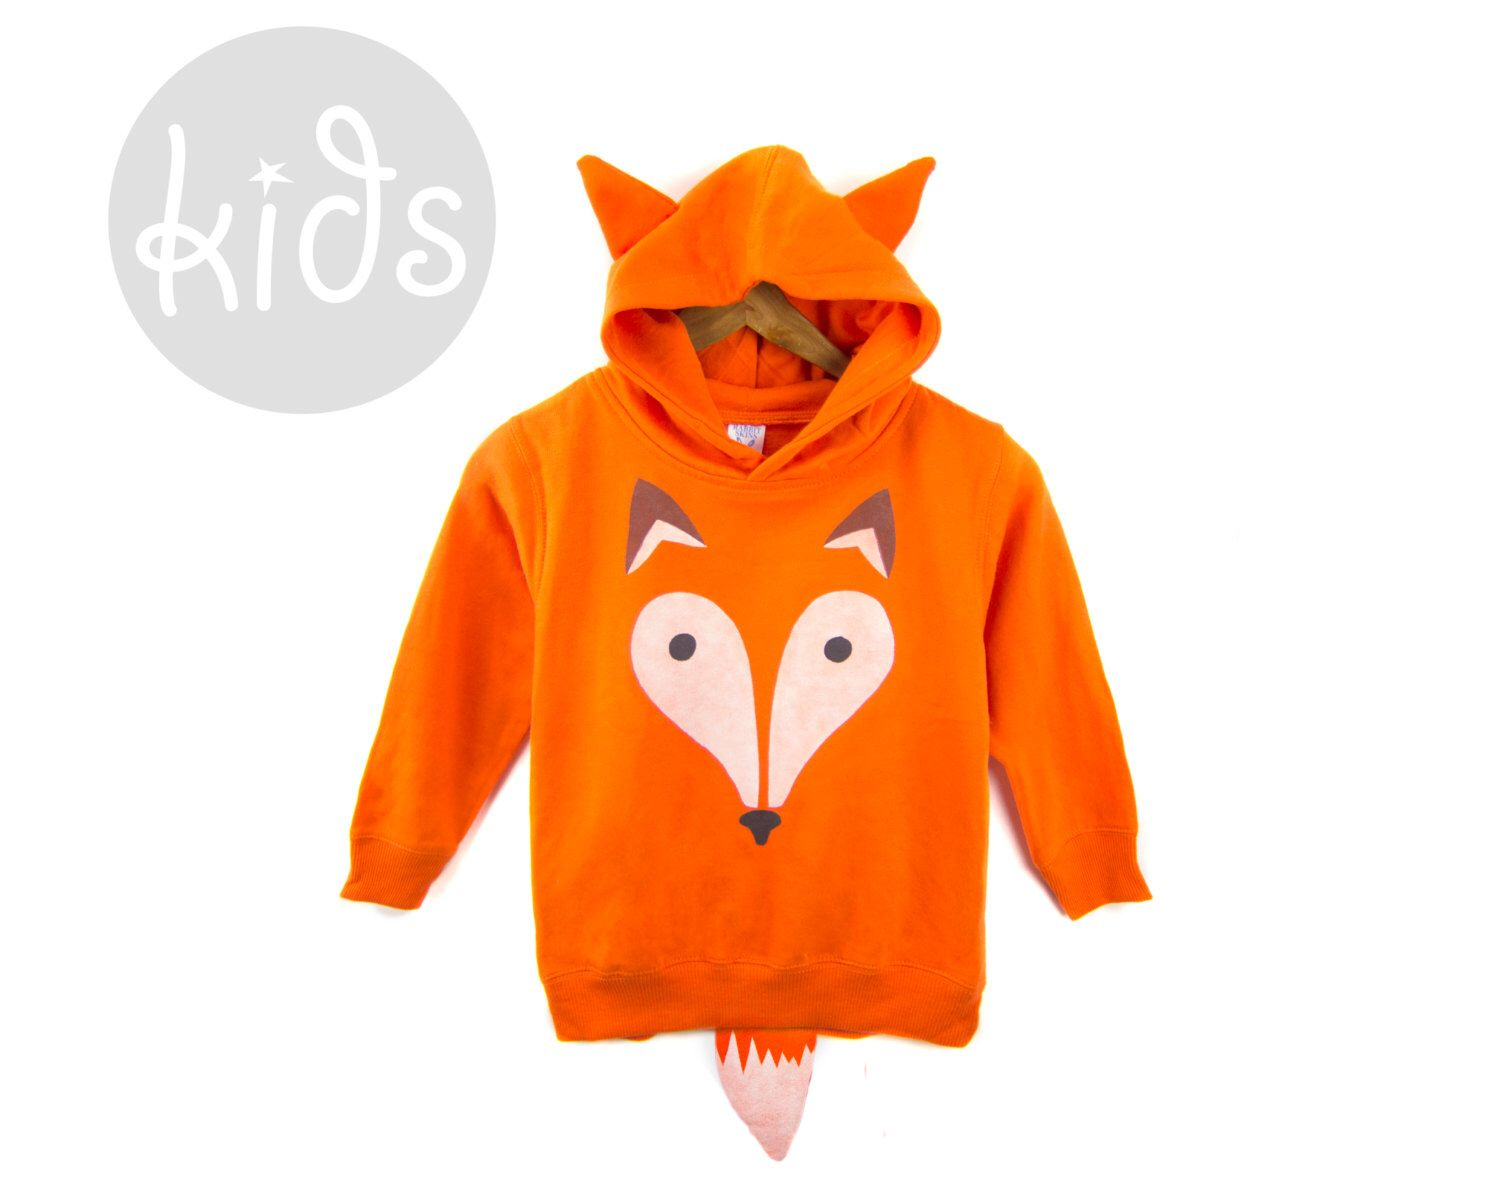 Geo Fox - Hand Stenciled Cotton Graphic Fleece Pocket Hoodie with Ears and Tail in Rust Orange - Baby Kids & Youth by twostringjane on Etsy https://www.etsy.com/listing/209783069/geo-fox-hand-stenciled-cotton-graphic